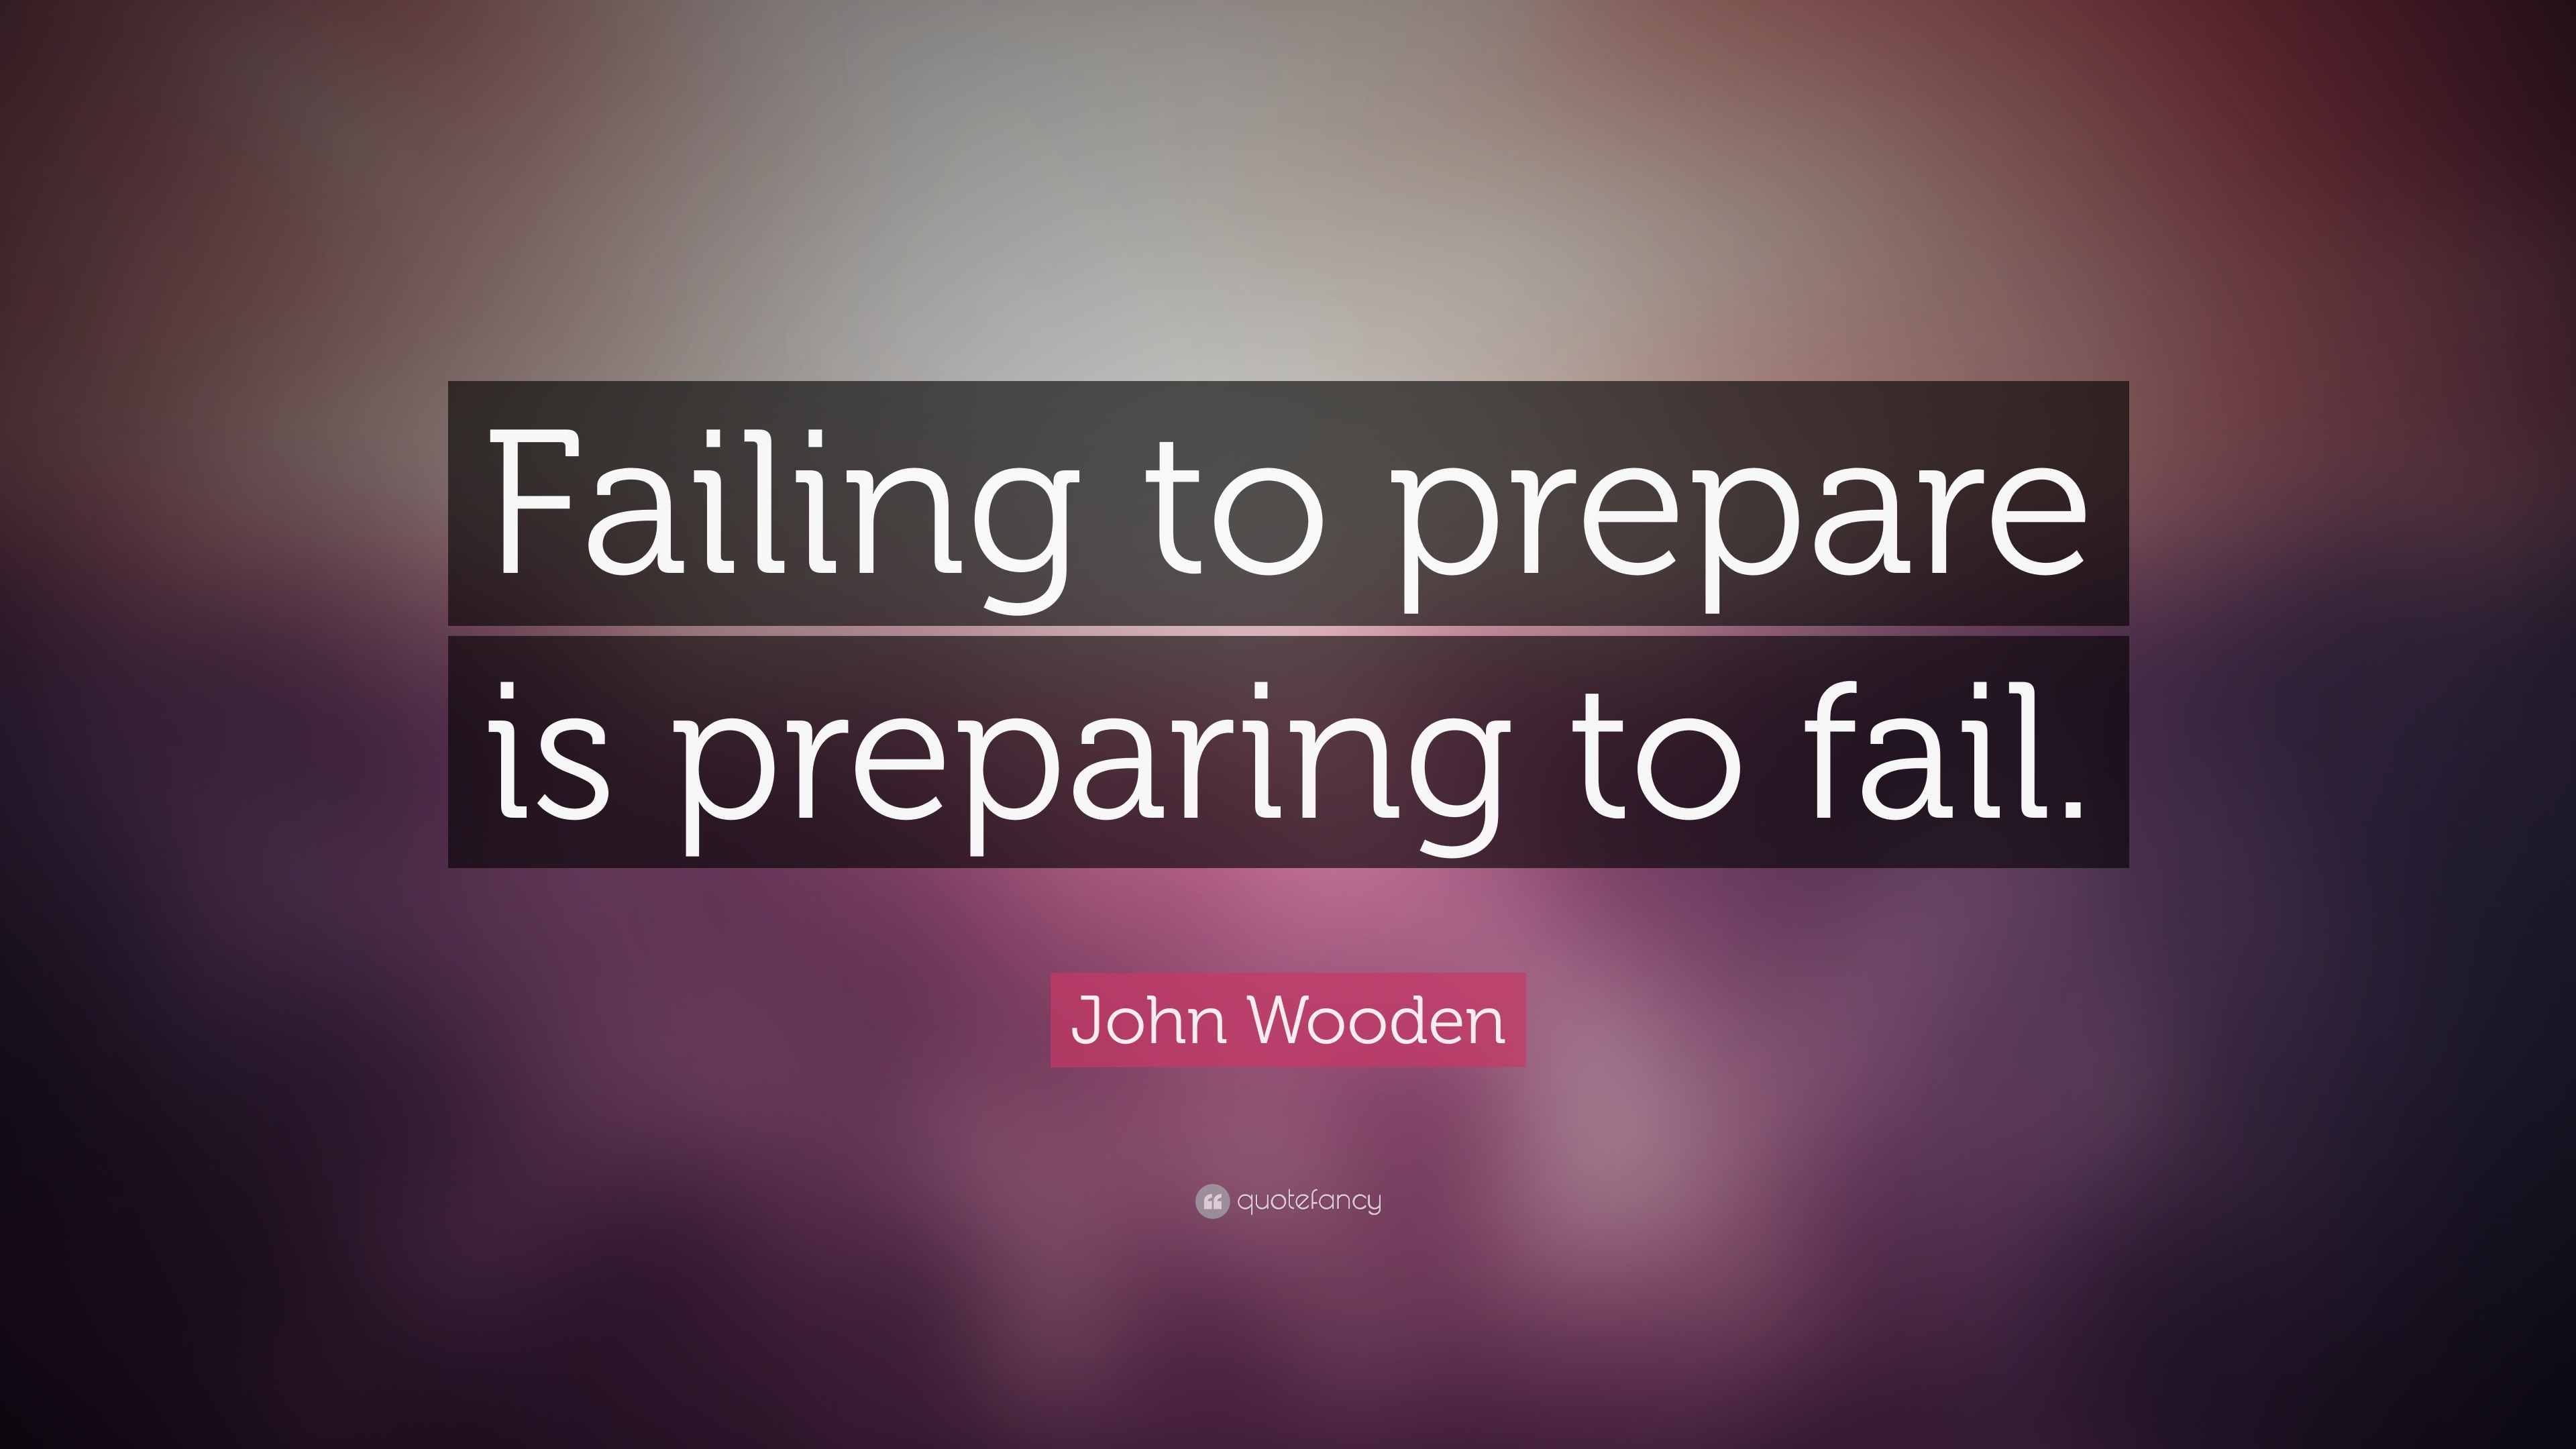 John Wooden Quotes (100 wallpapers) - Quotefancy